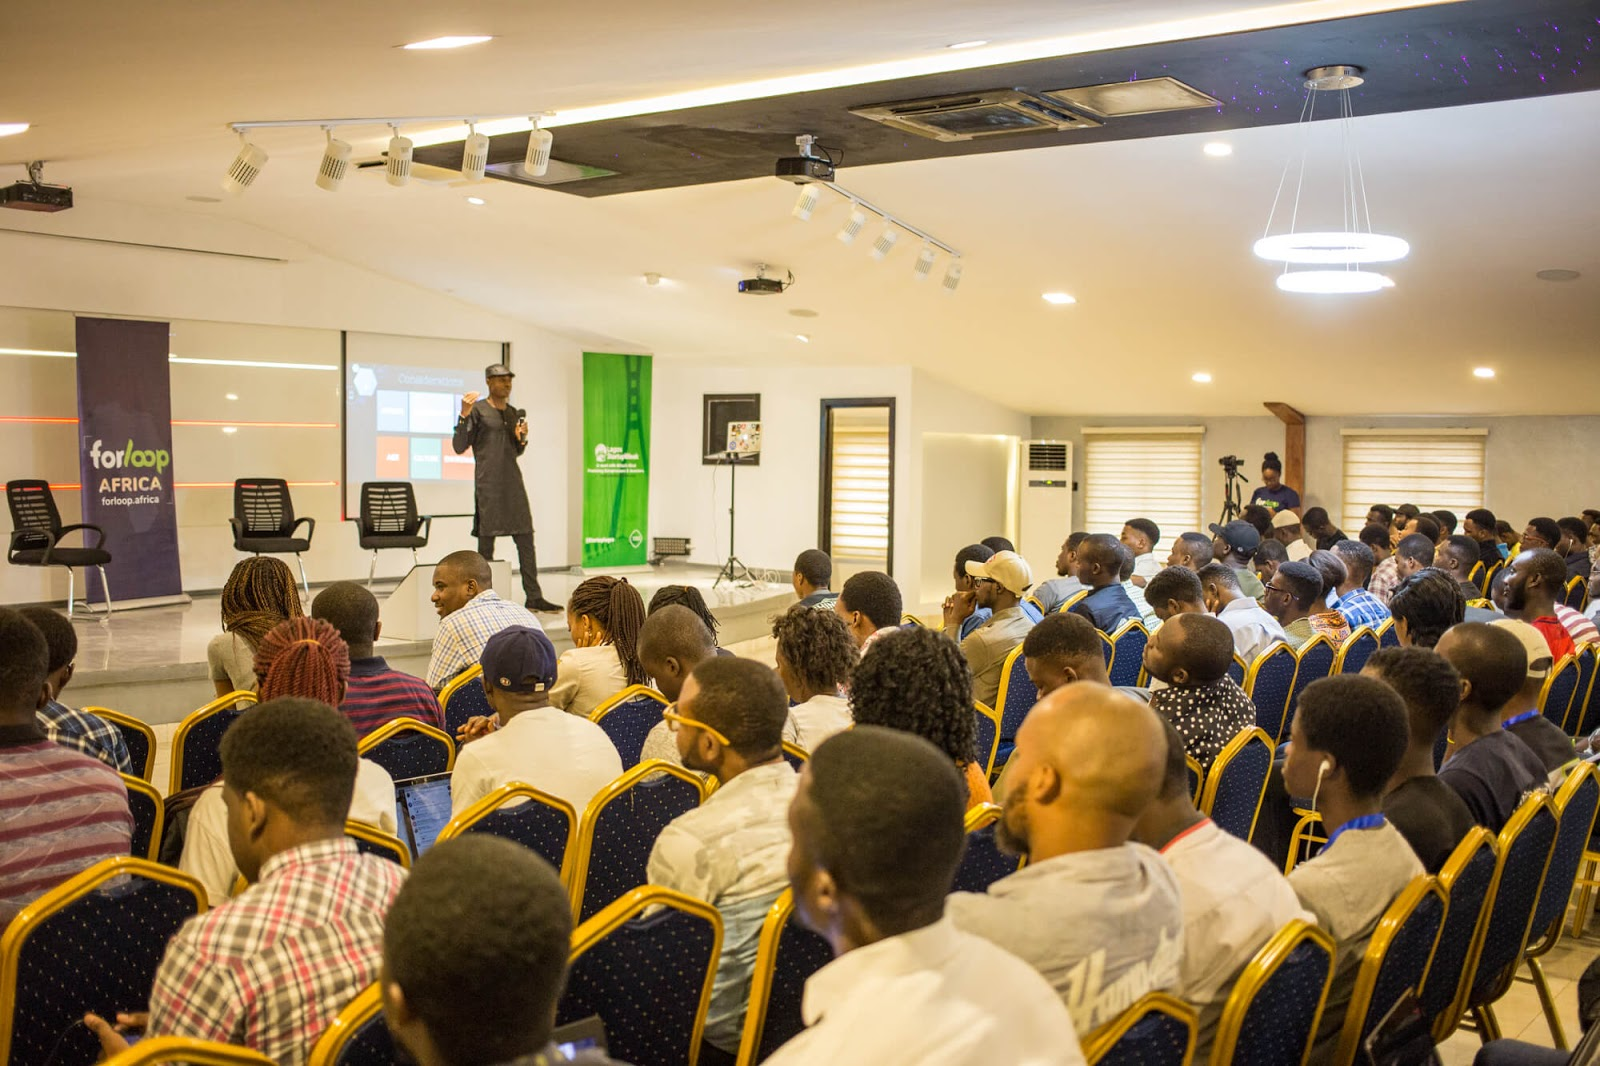 ForLoop Africa Board Member Chris Nwamba at a ForLoop Africa event. (Photo: Benjamin Dada)